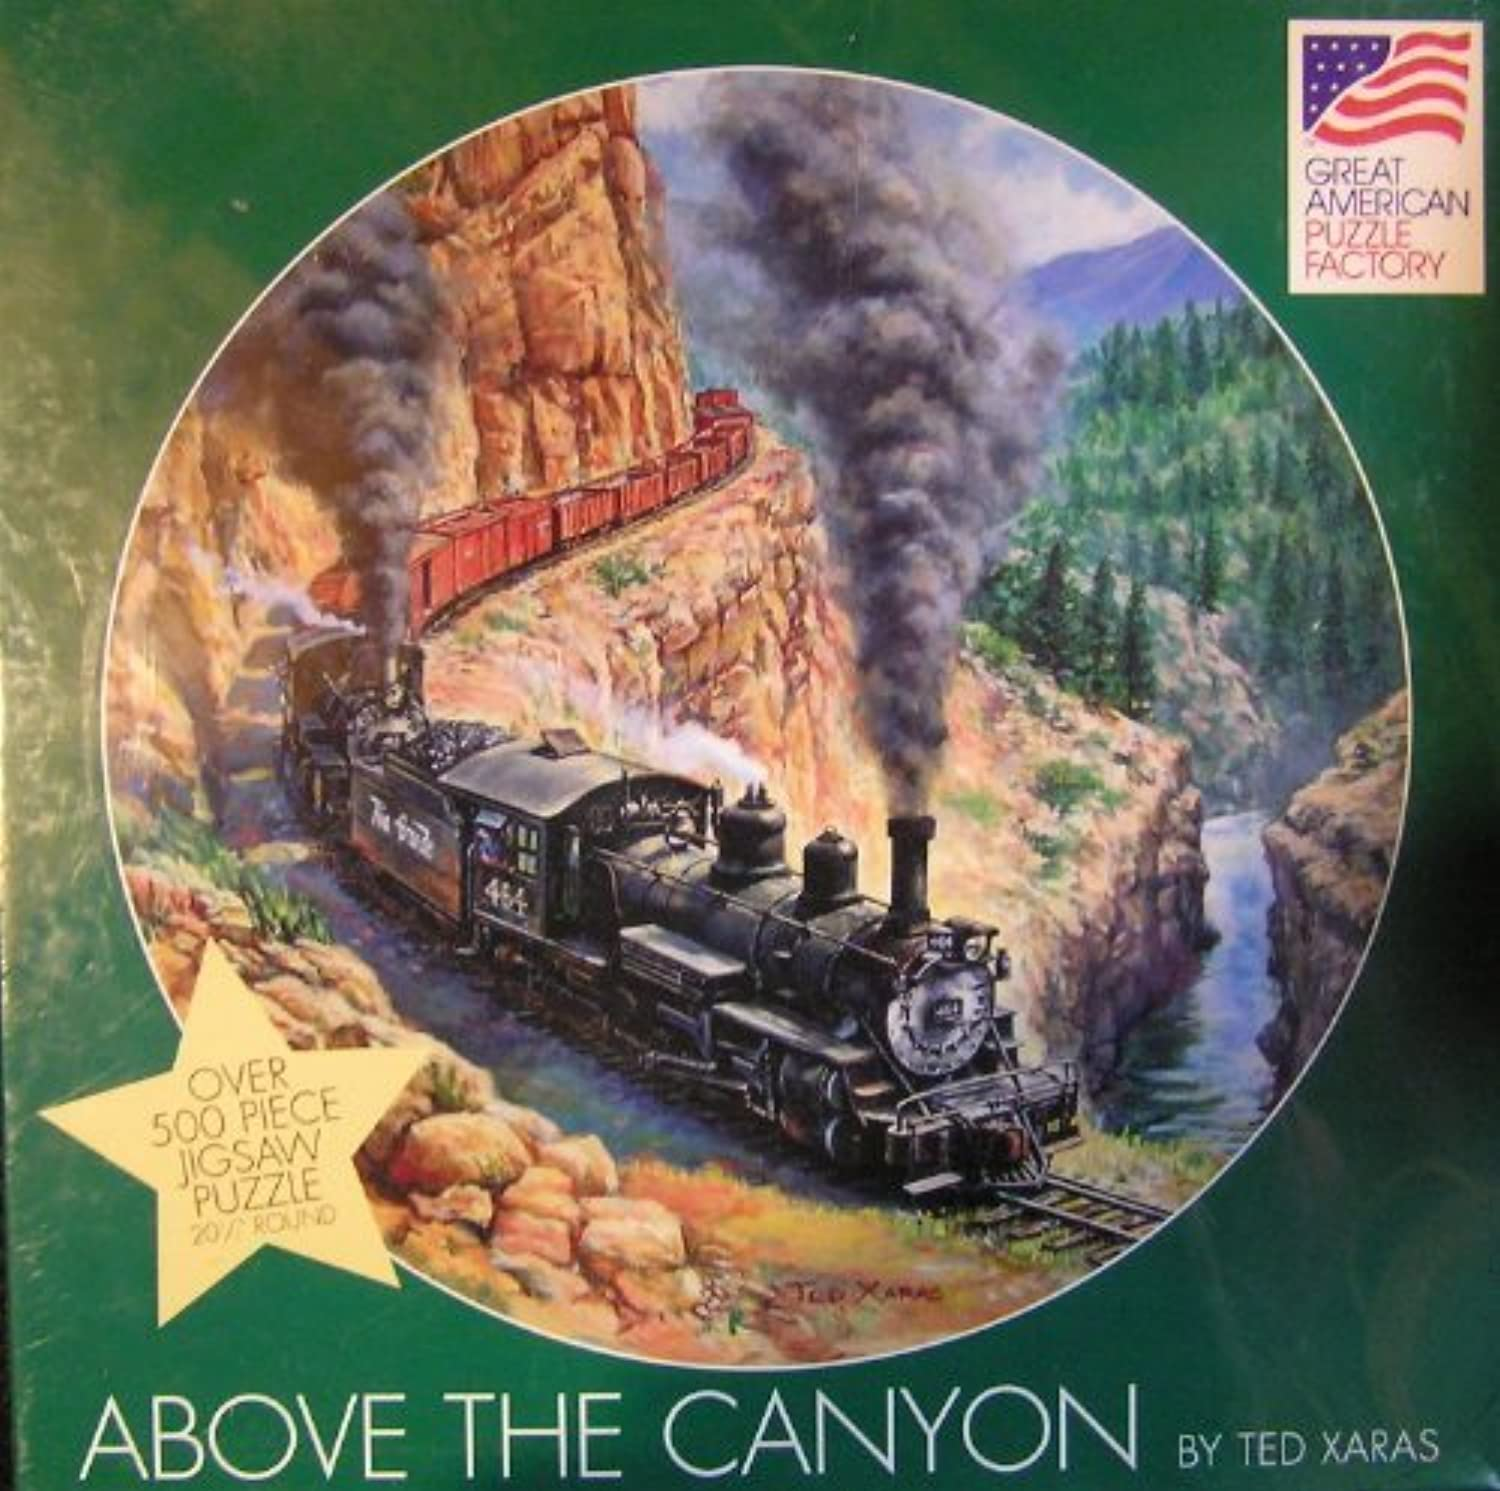 Above the Canyon By Ted Xaras 500 Piece Puzzle by Great America Puzzle Factory